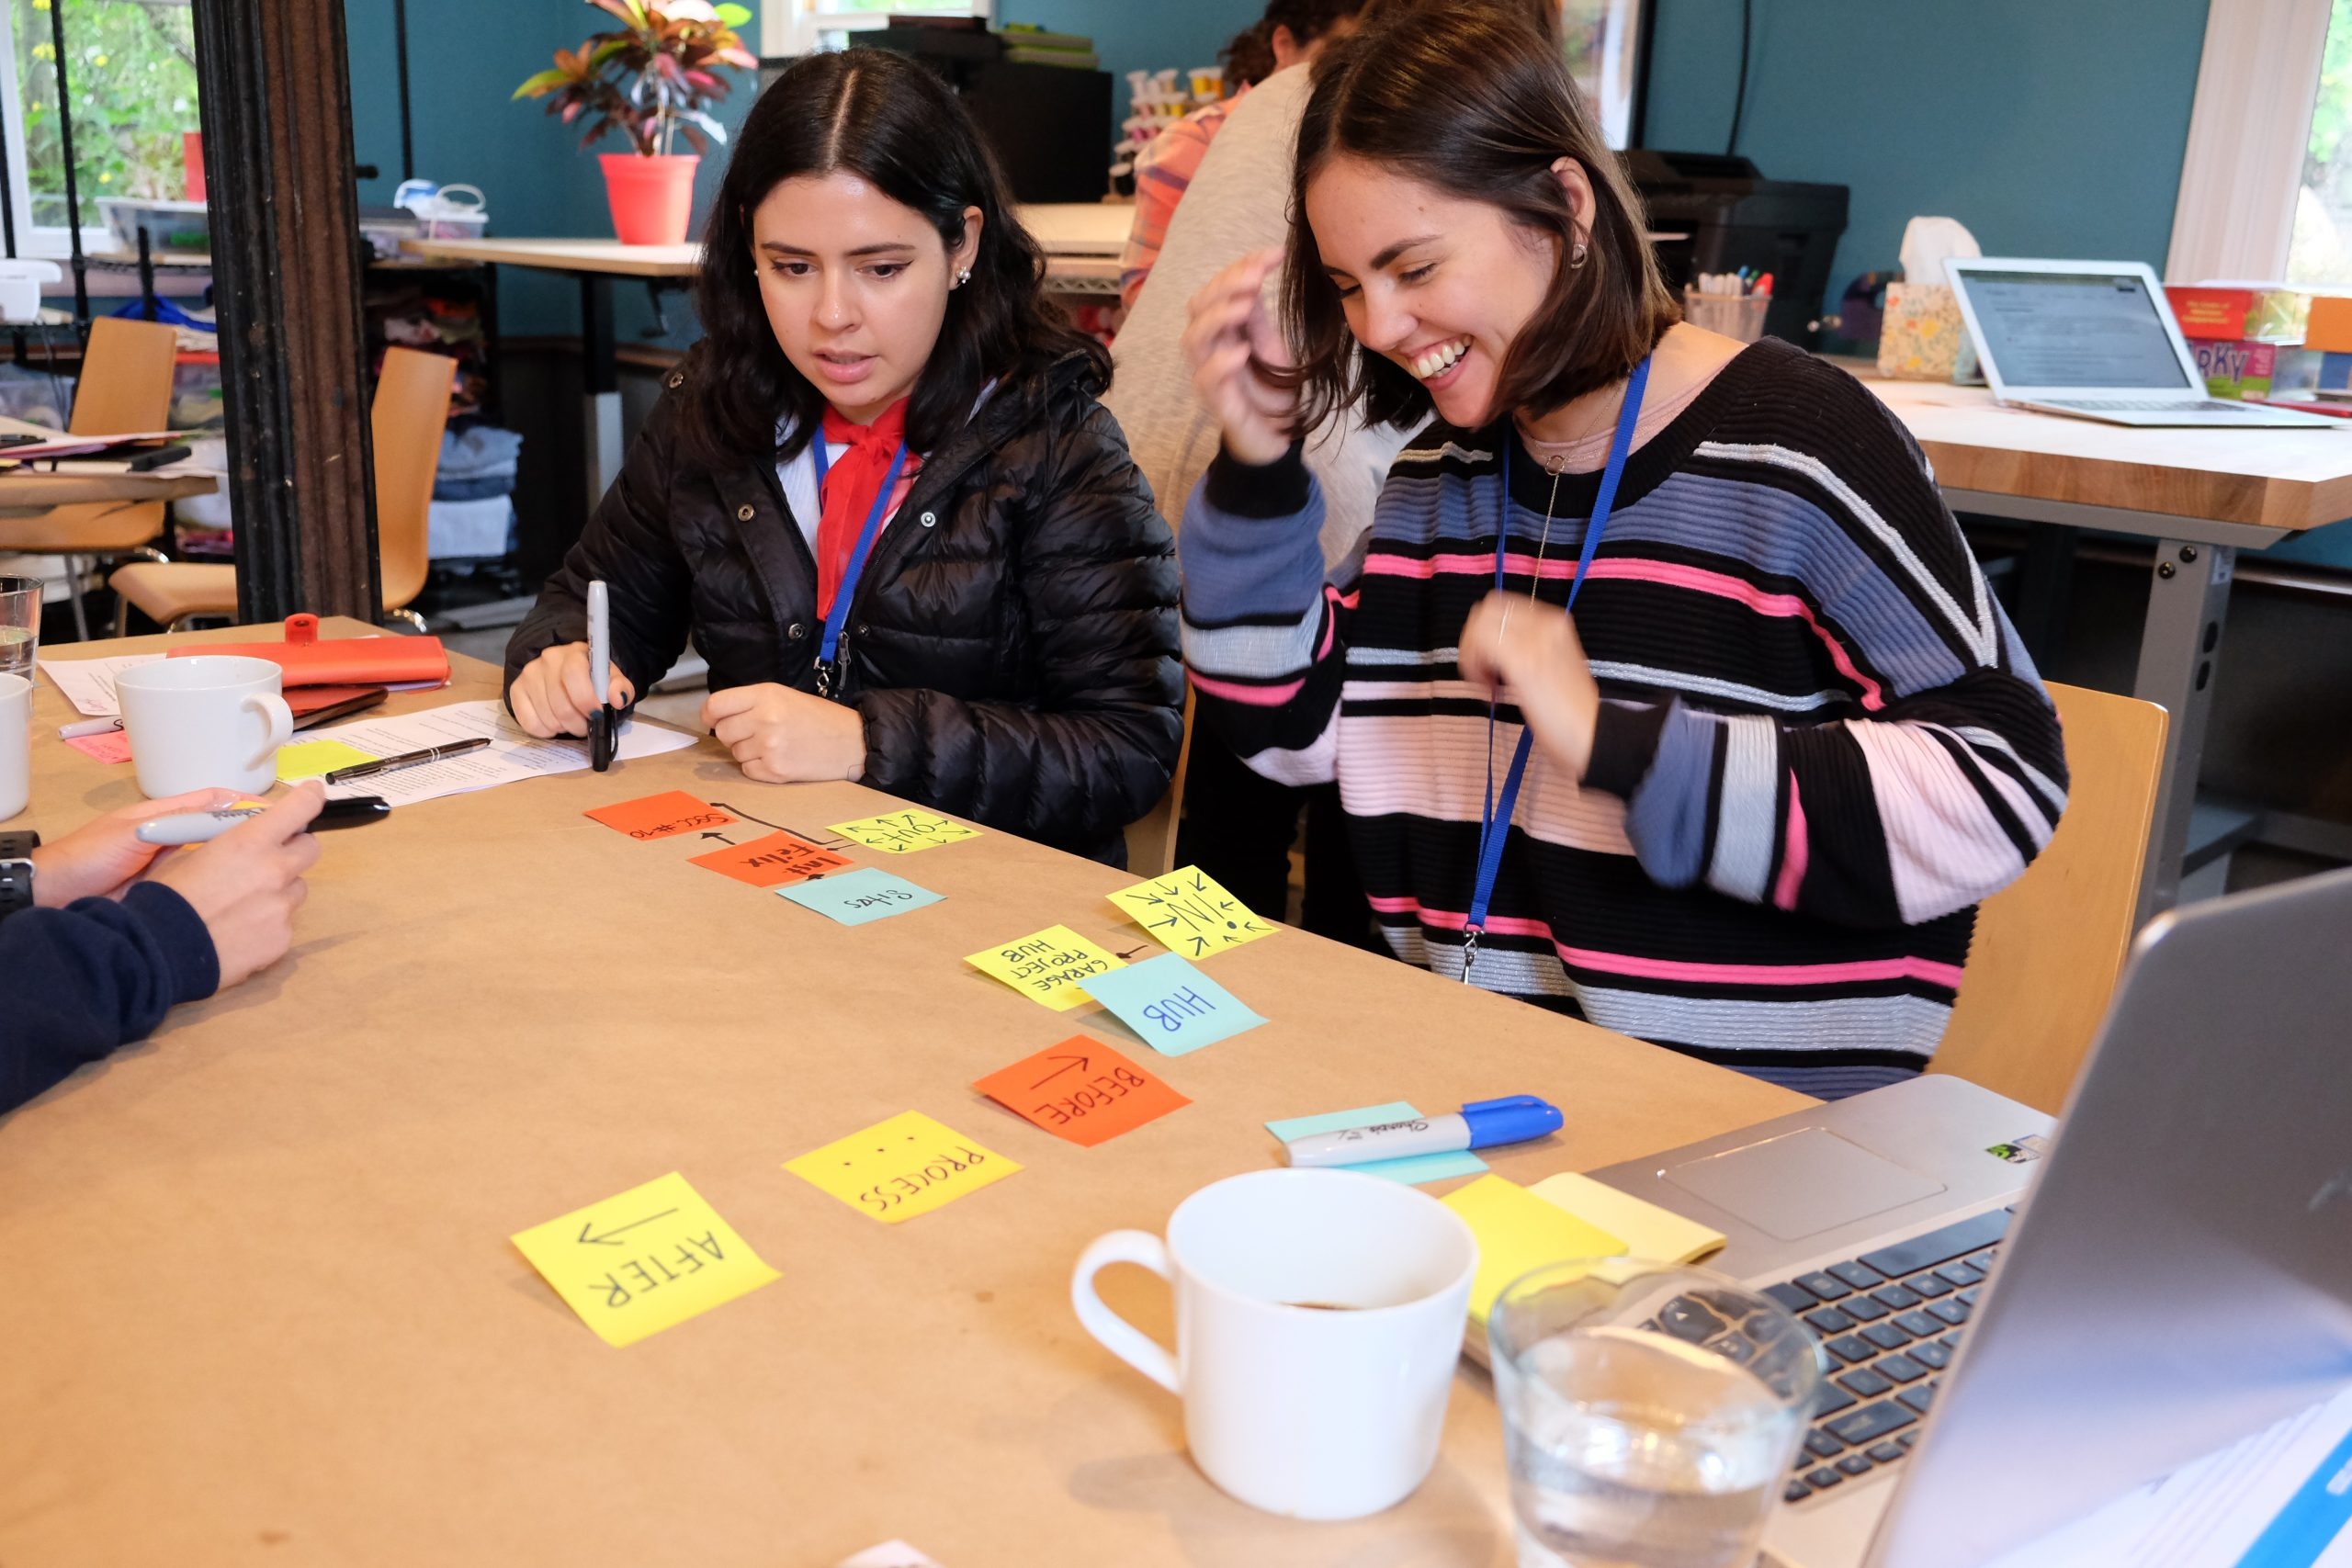 Two women sit at a table with many colorful post-it notes in front of them. One is writing something down and the other is smiling and laughing.